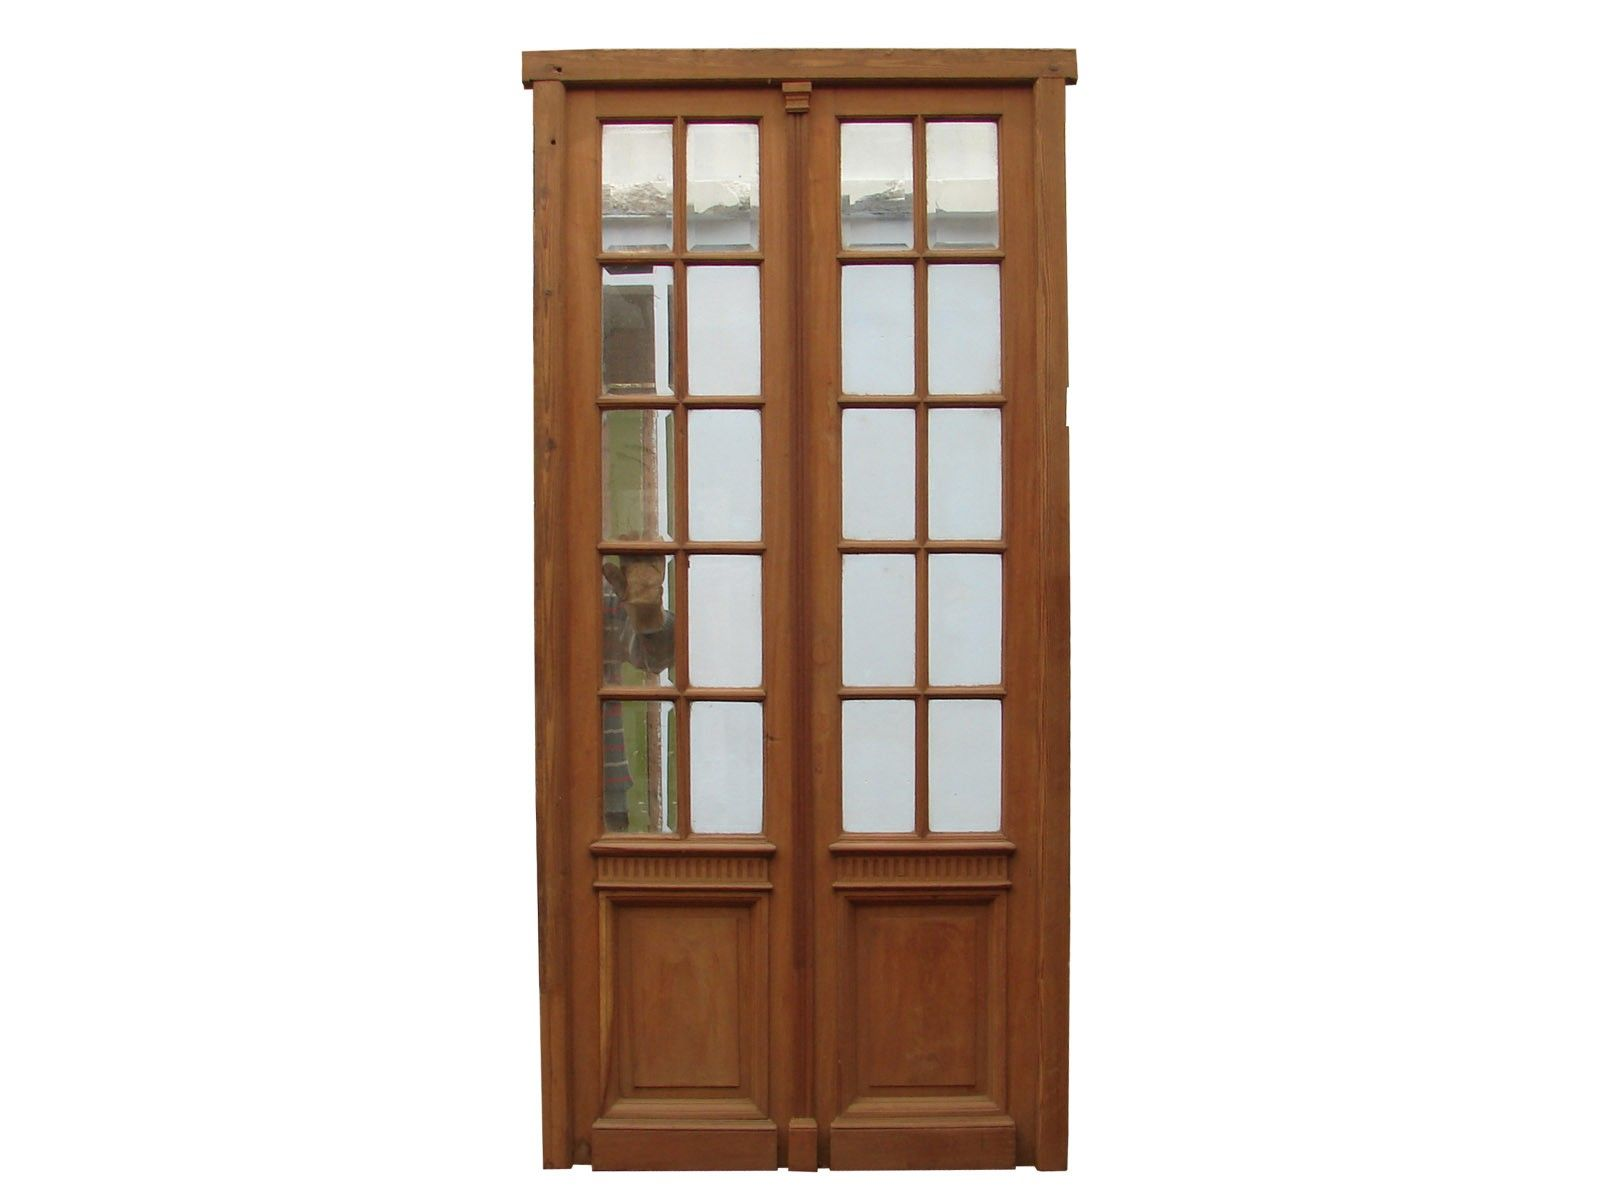 Reclaimed interior doors for sale cost less and the deal can save you money